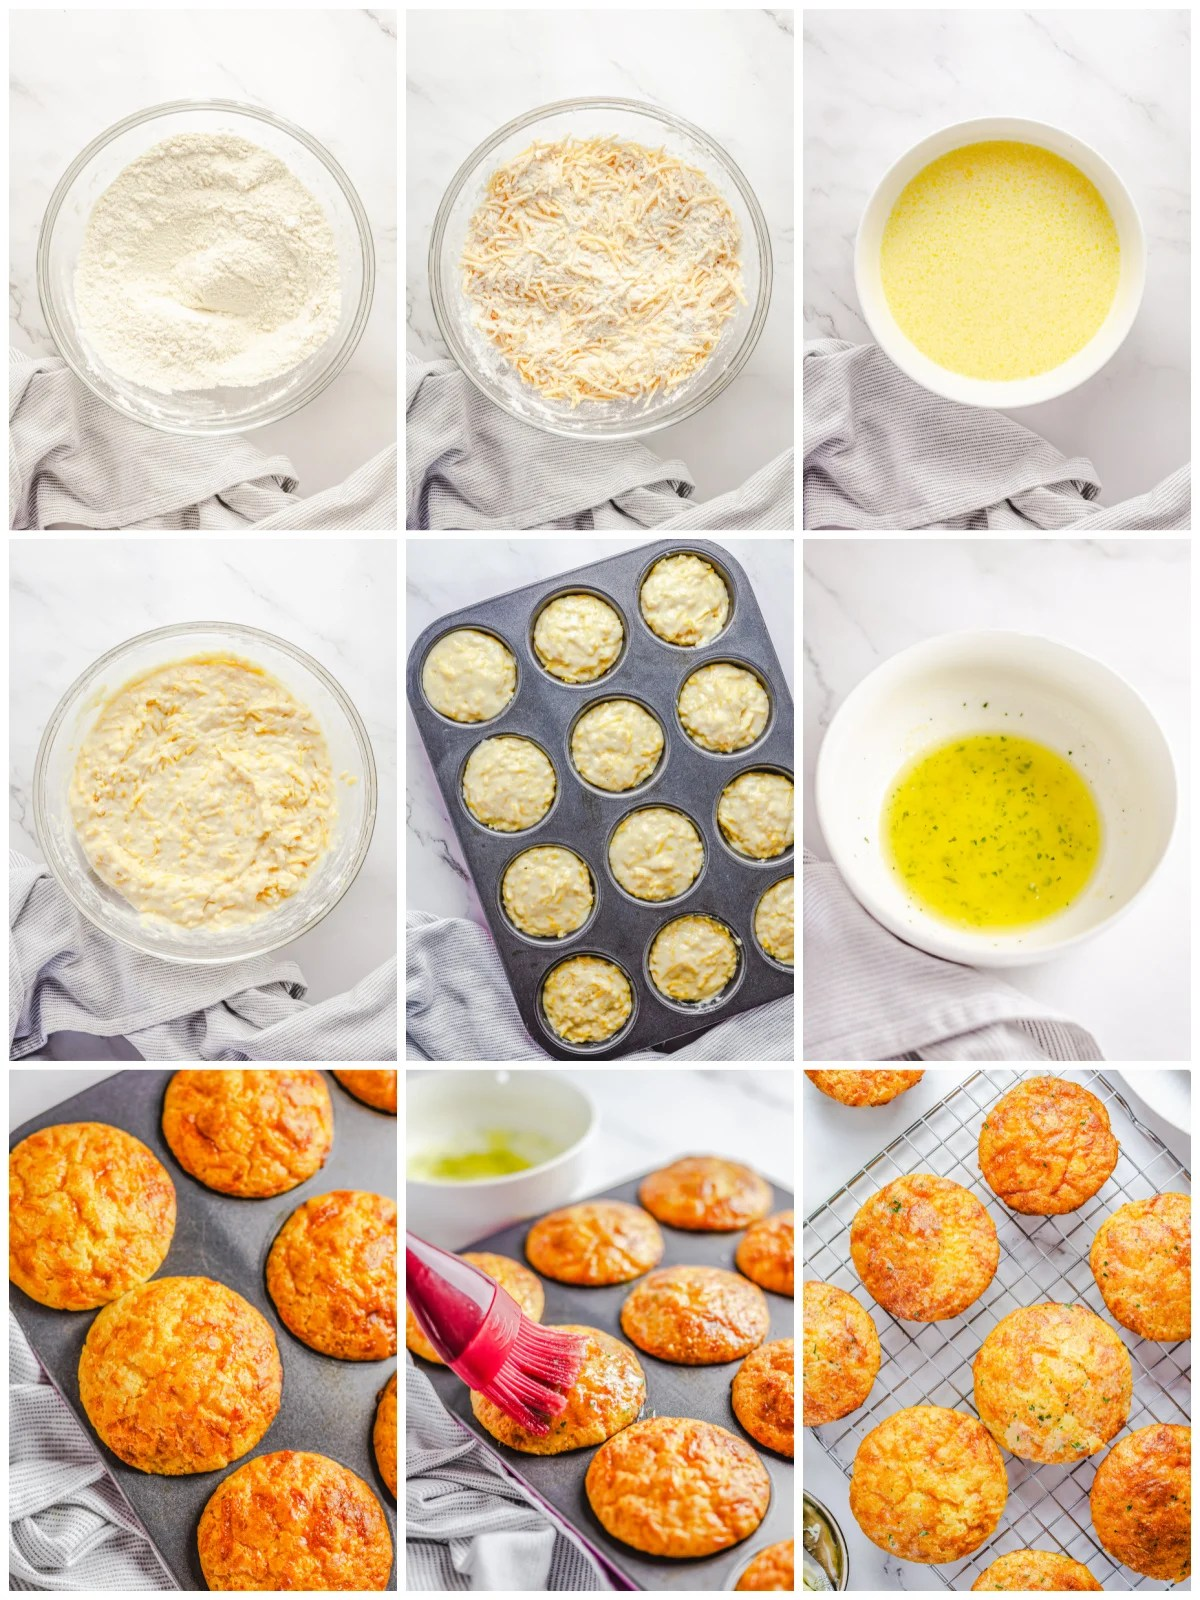 Step by step photos on how to make Garlic Cheese Muffins.